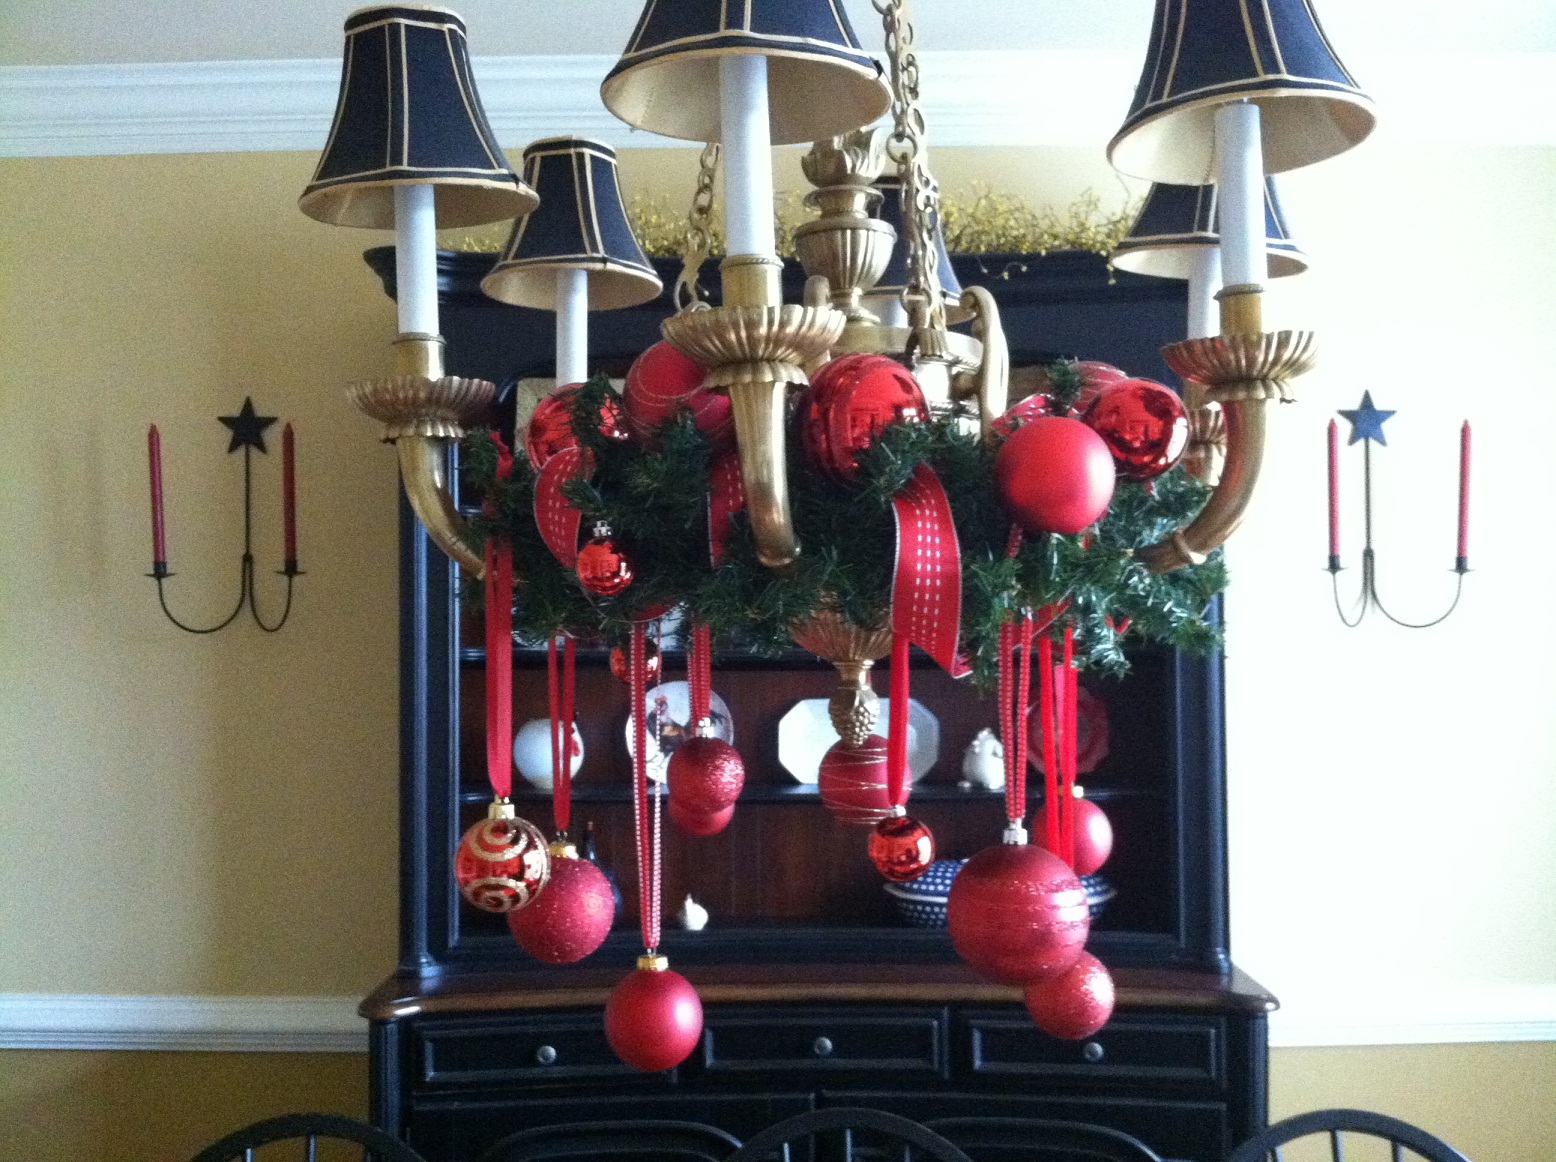 I Hung Various Size Red Ornaments At Diffe Lengths From Ribbons Also Added A Wider Ribbon And More In The Garland